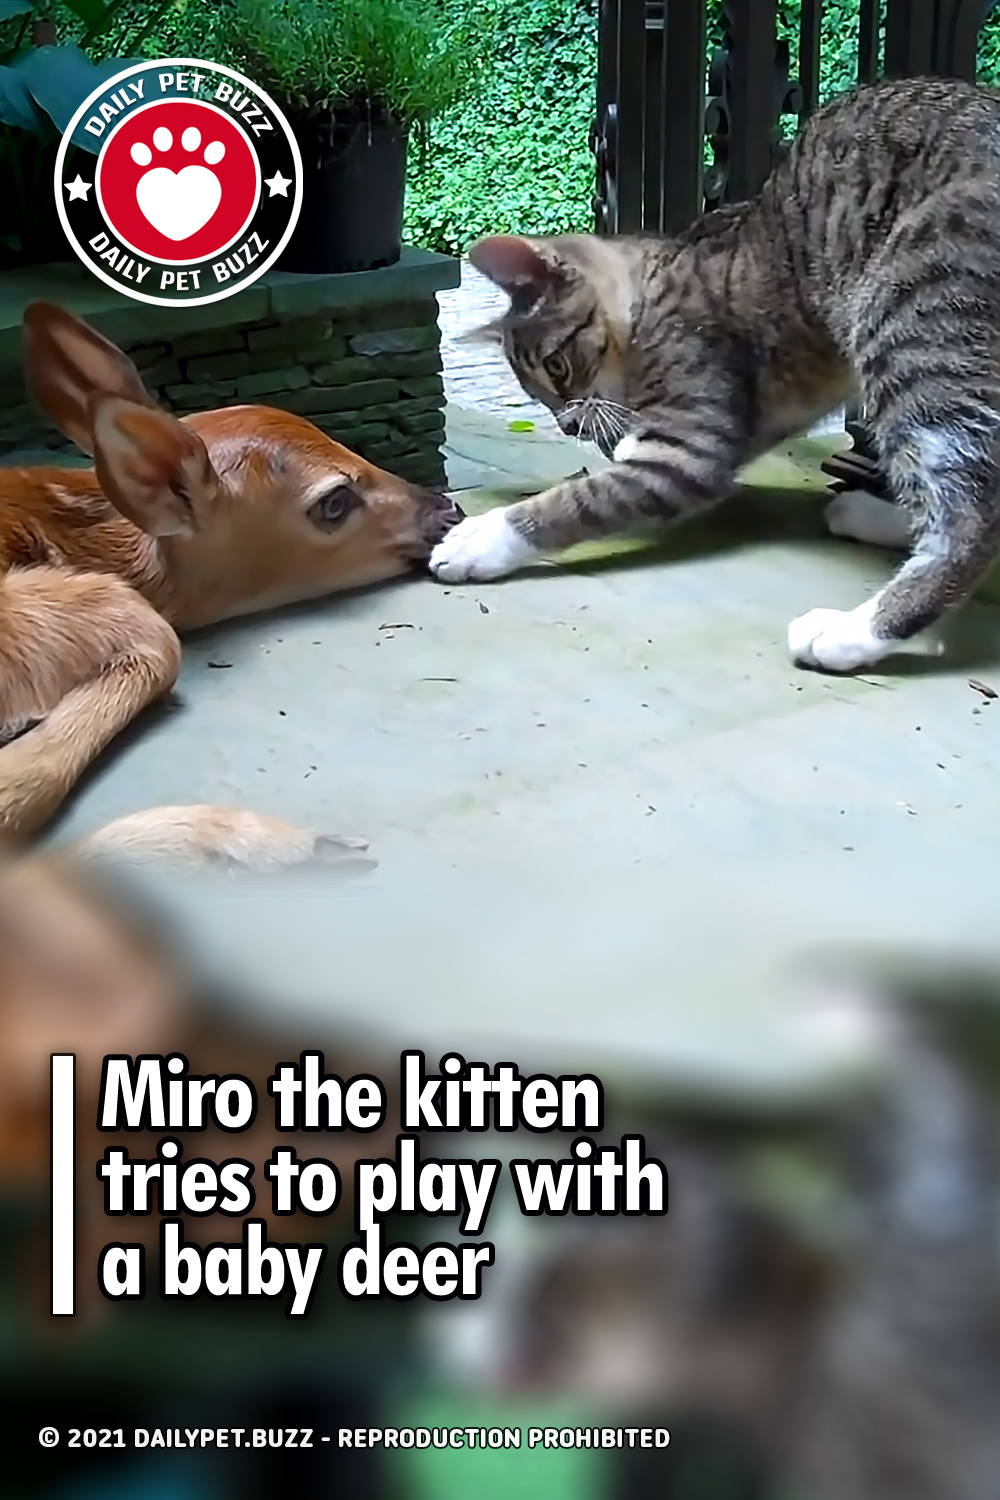 Miro the kitten tries to play with a baby deer